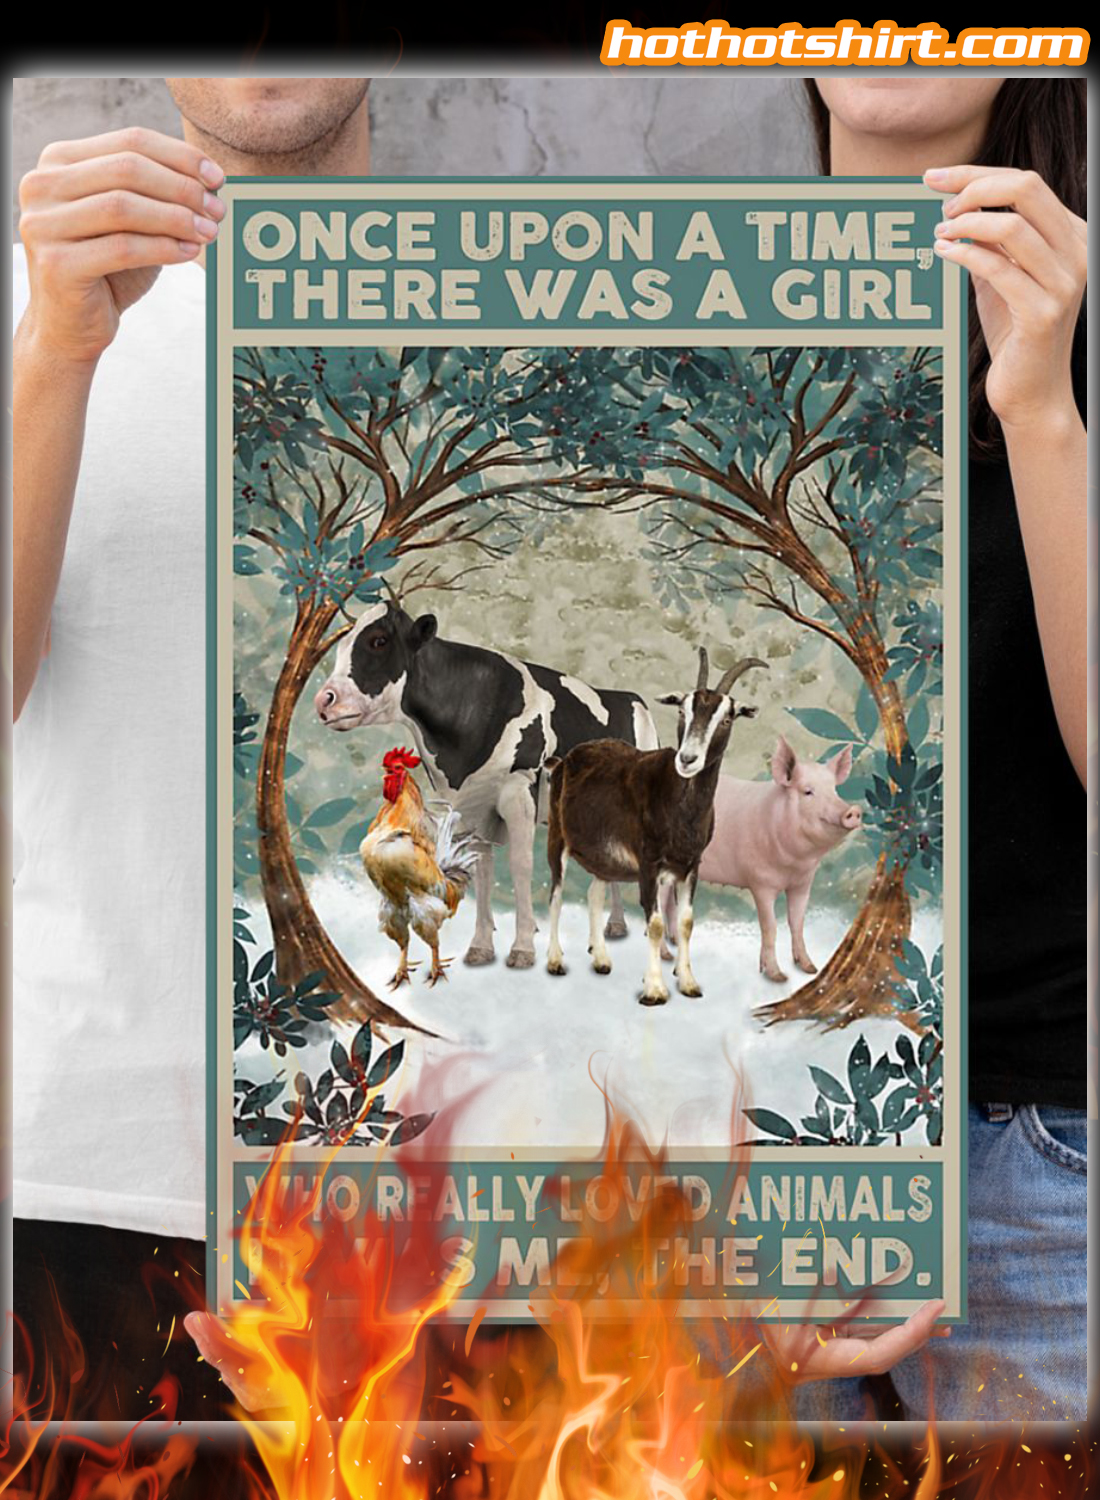 Once upon a time there was a girl who really loved animals it was me the end poster